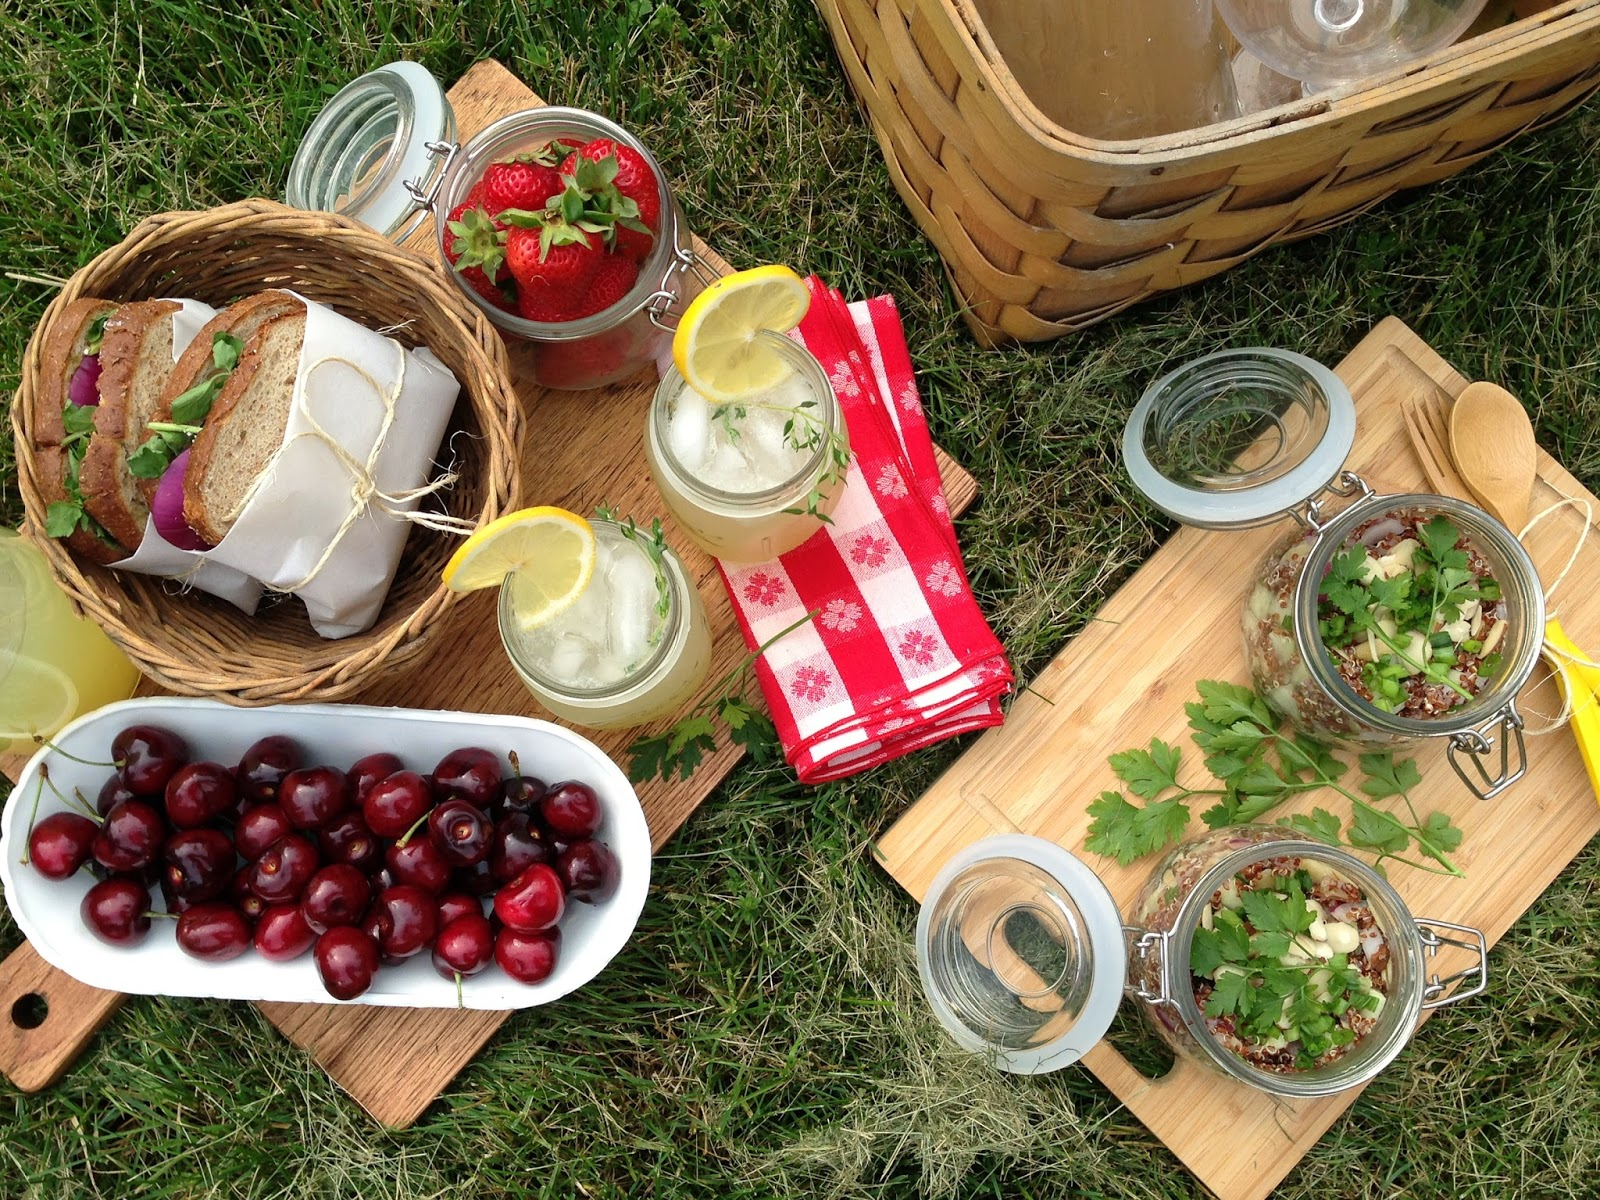 Entertaining Picnic For Two 2812 on italian lemonade